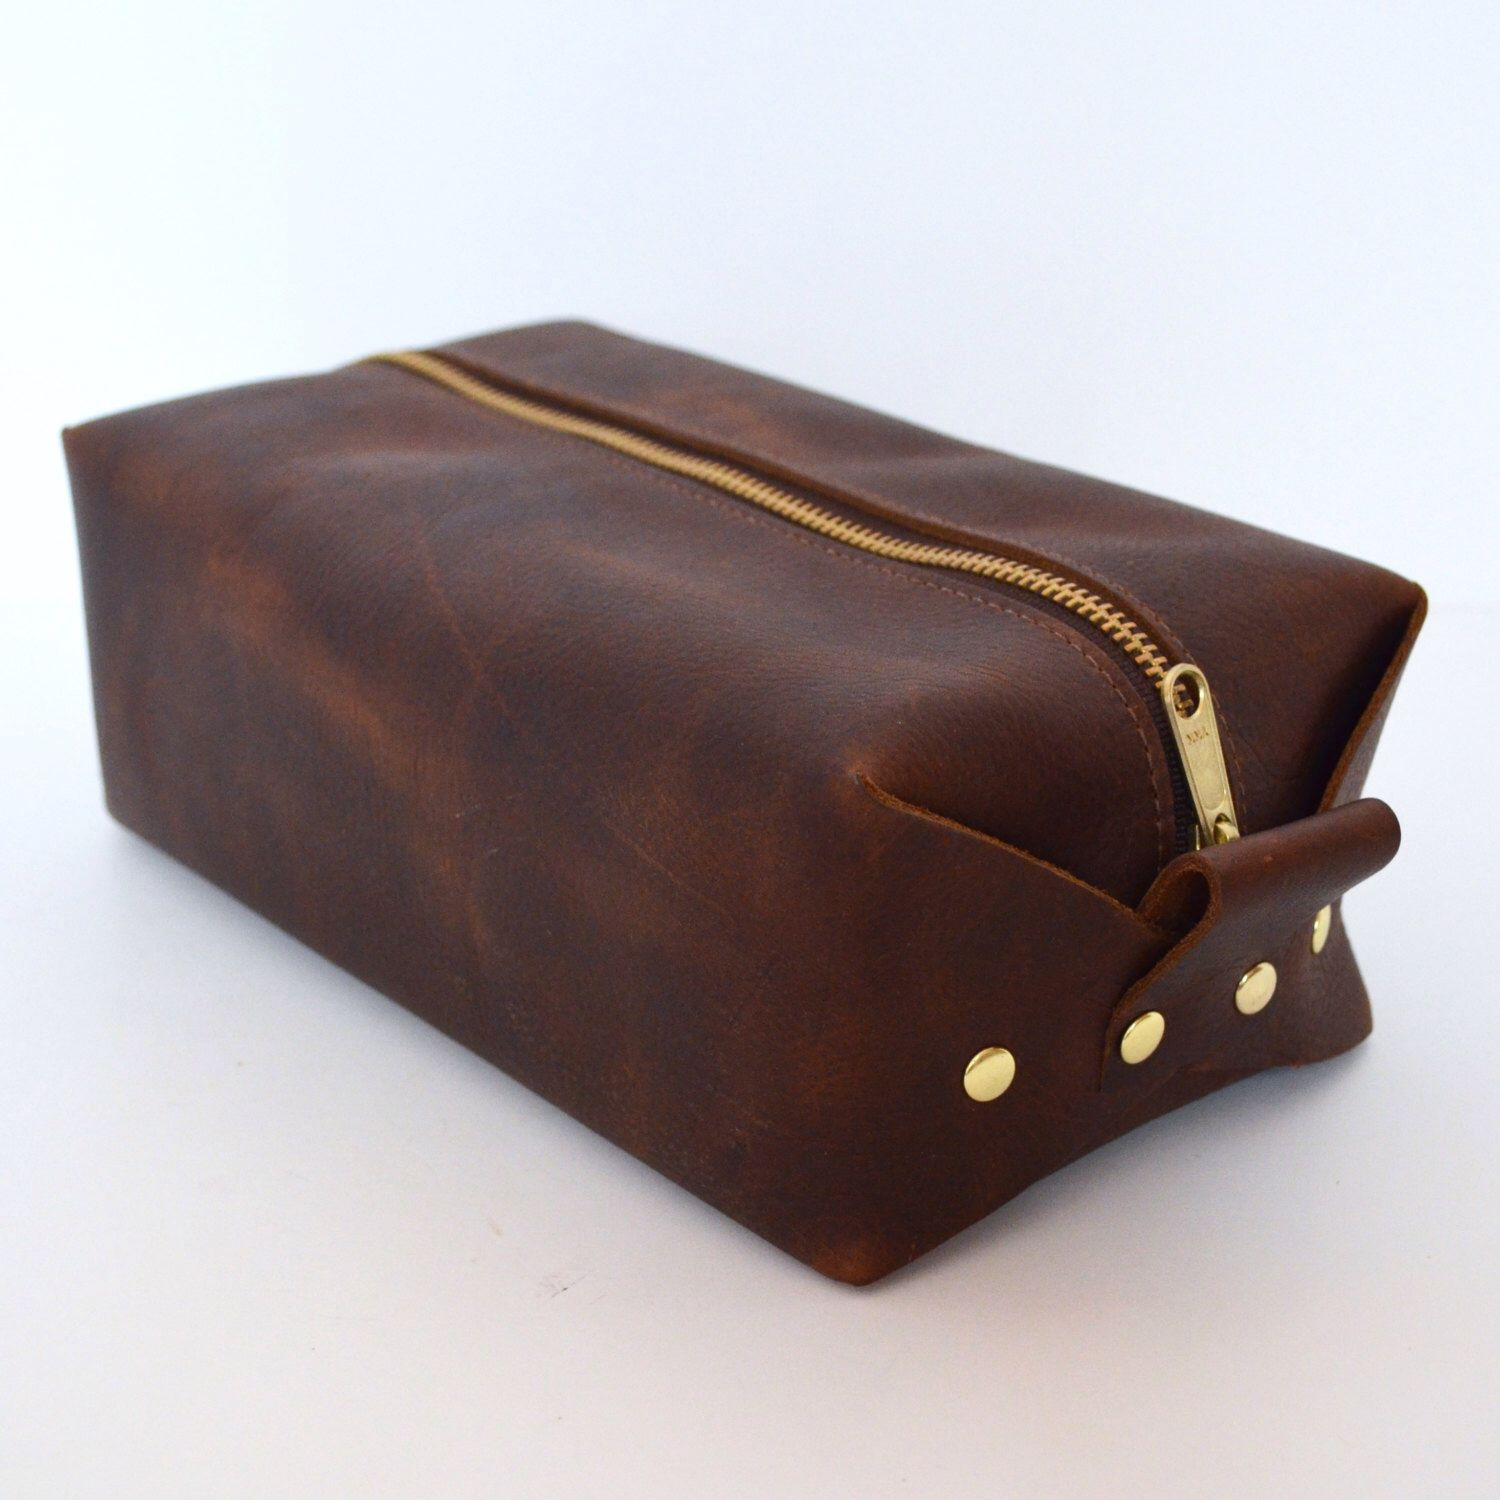 f29c16c6d6b9 Personalized Men's Leather Toiletry Bag, Leather Toiletry Bag ...